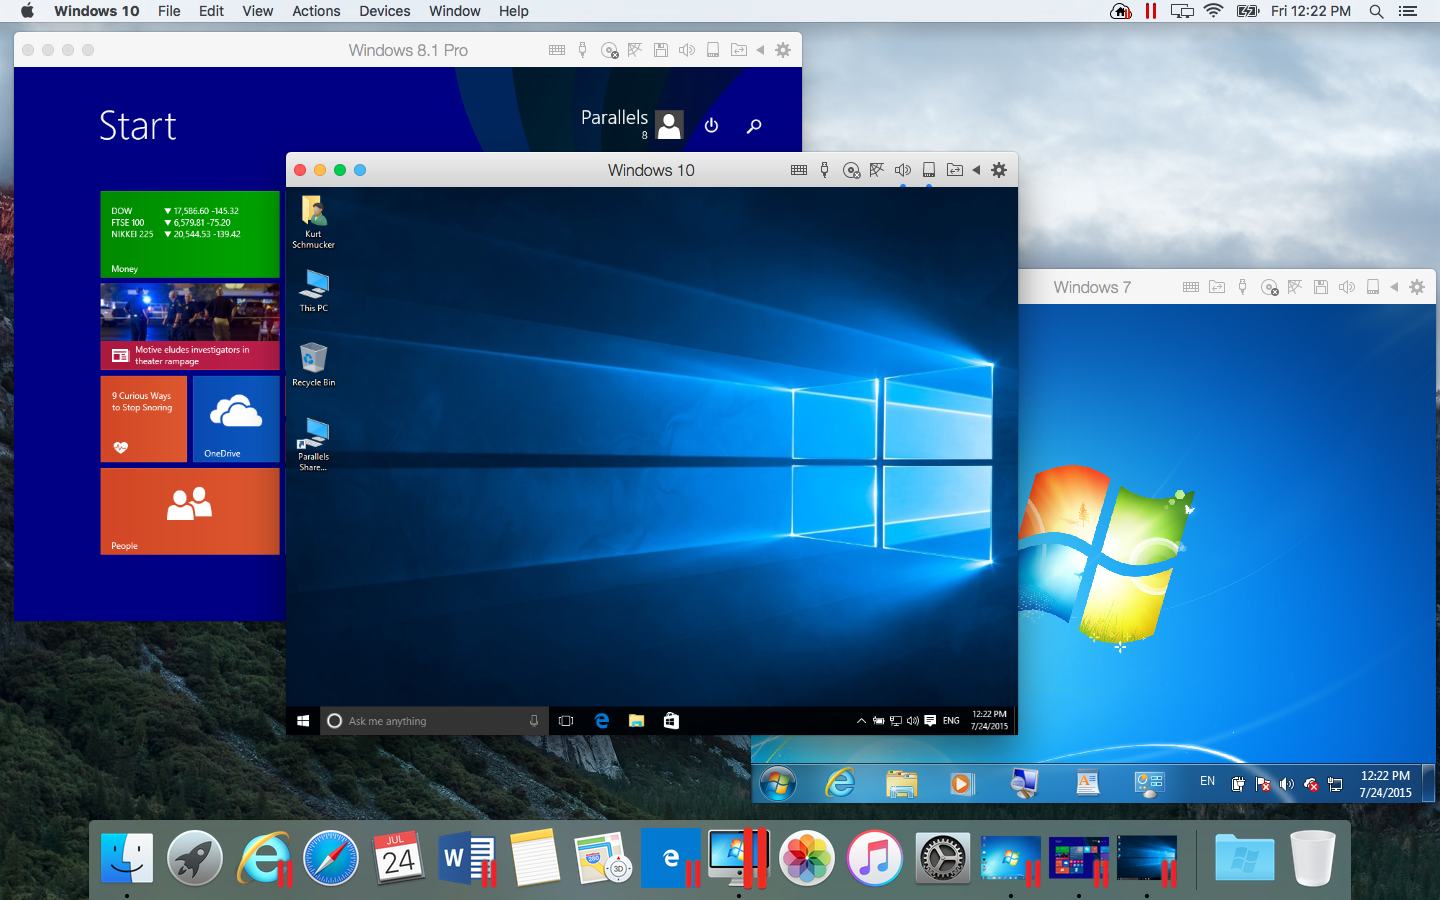 Parallels Desktop 12 per Mac: la recensione del software per emulare Windows su Mac